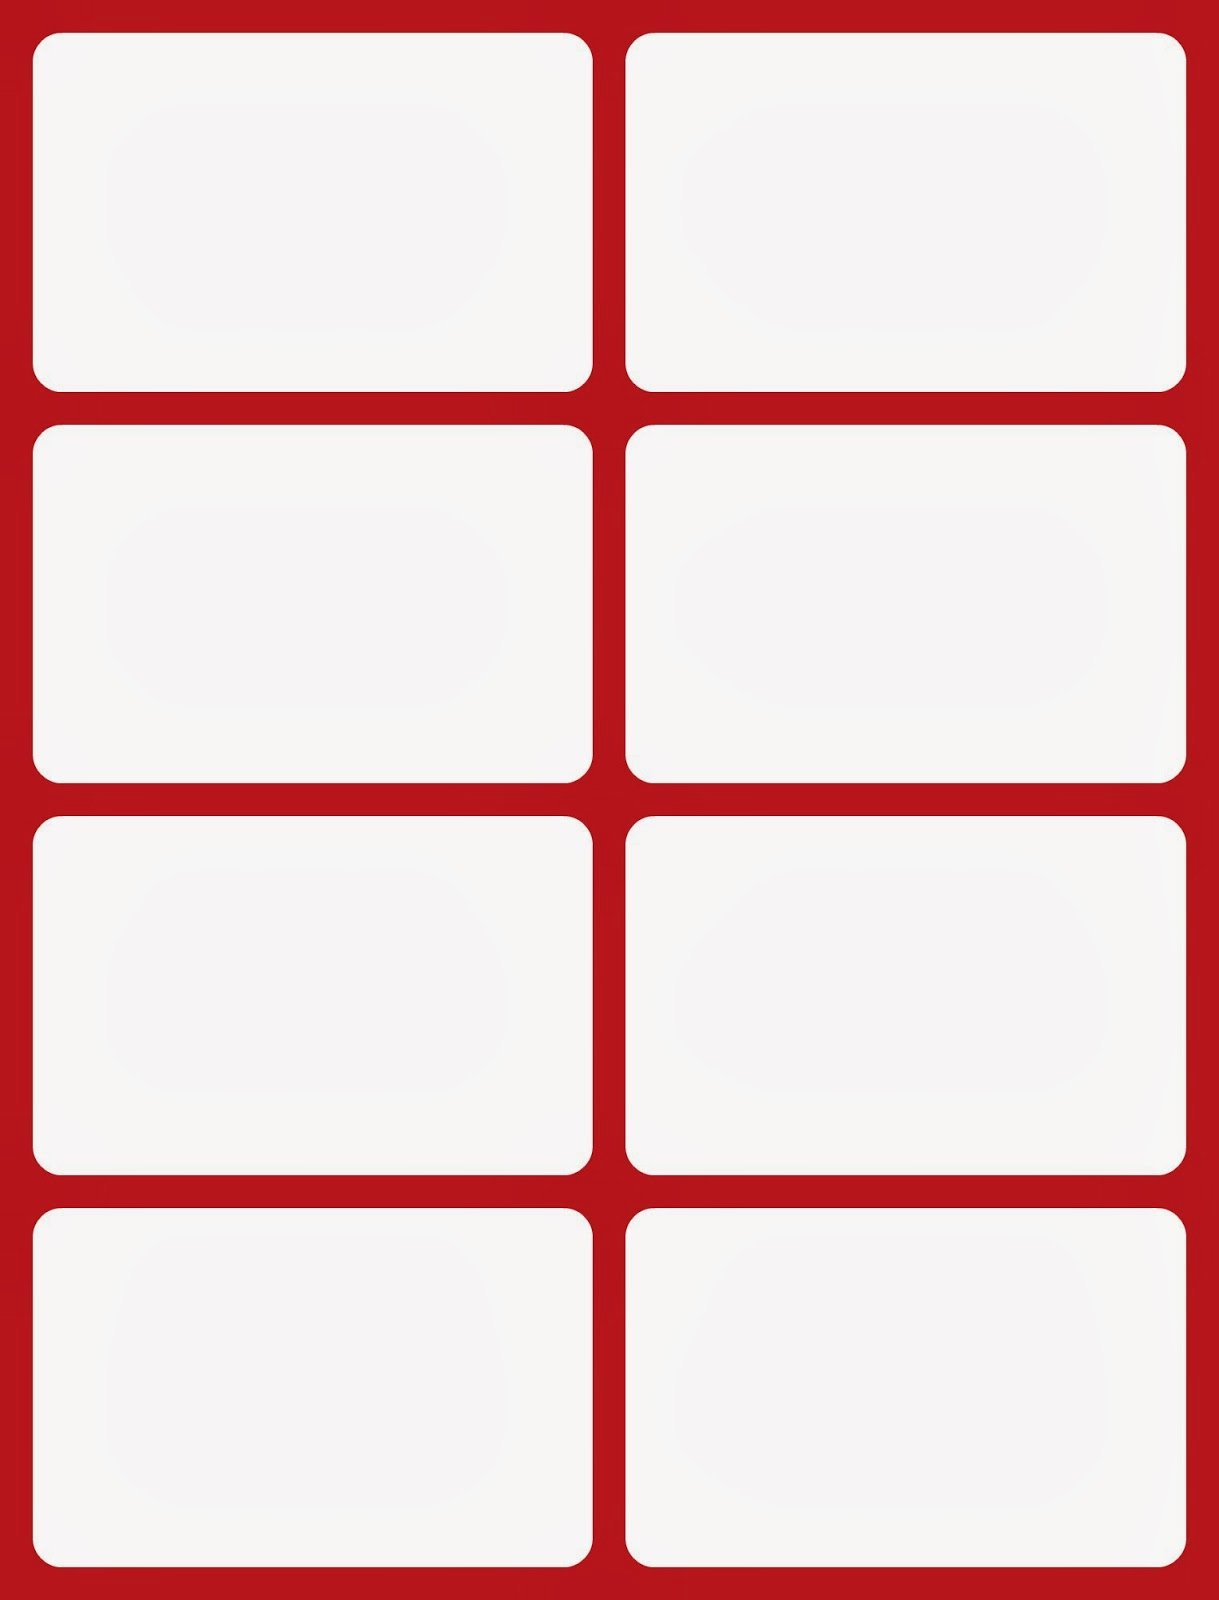 Flash Card Template Word New and Away We Go Printable Flash Cards for Preschoolers